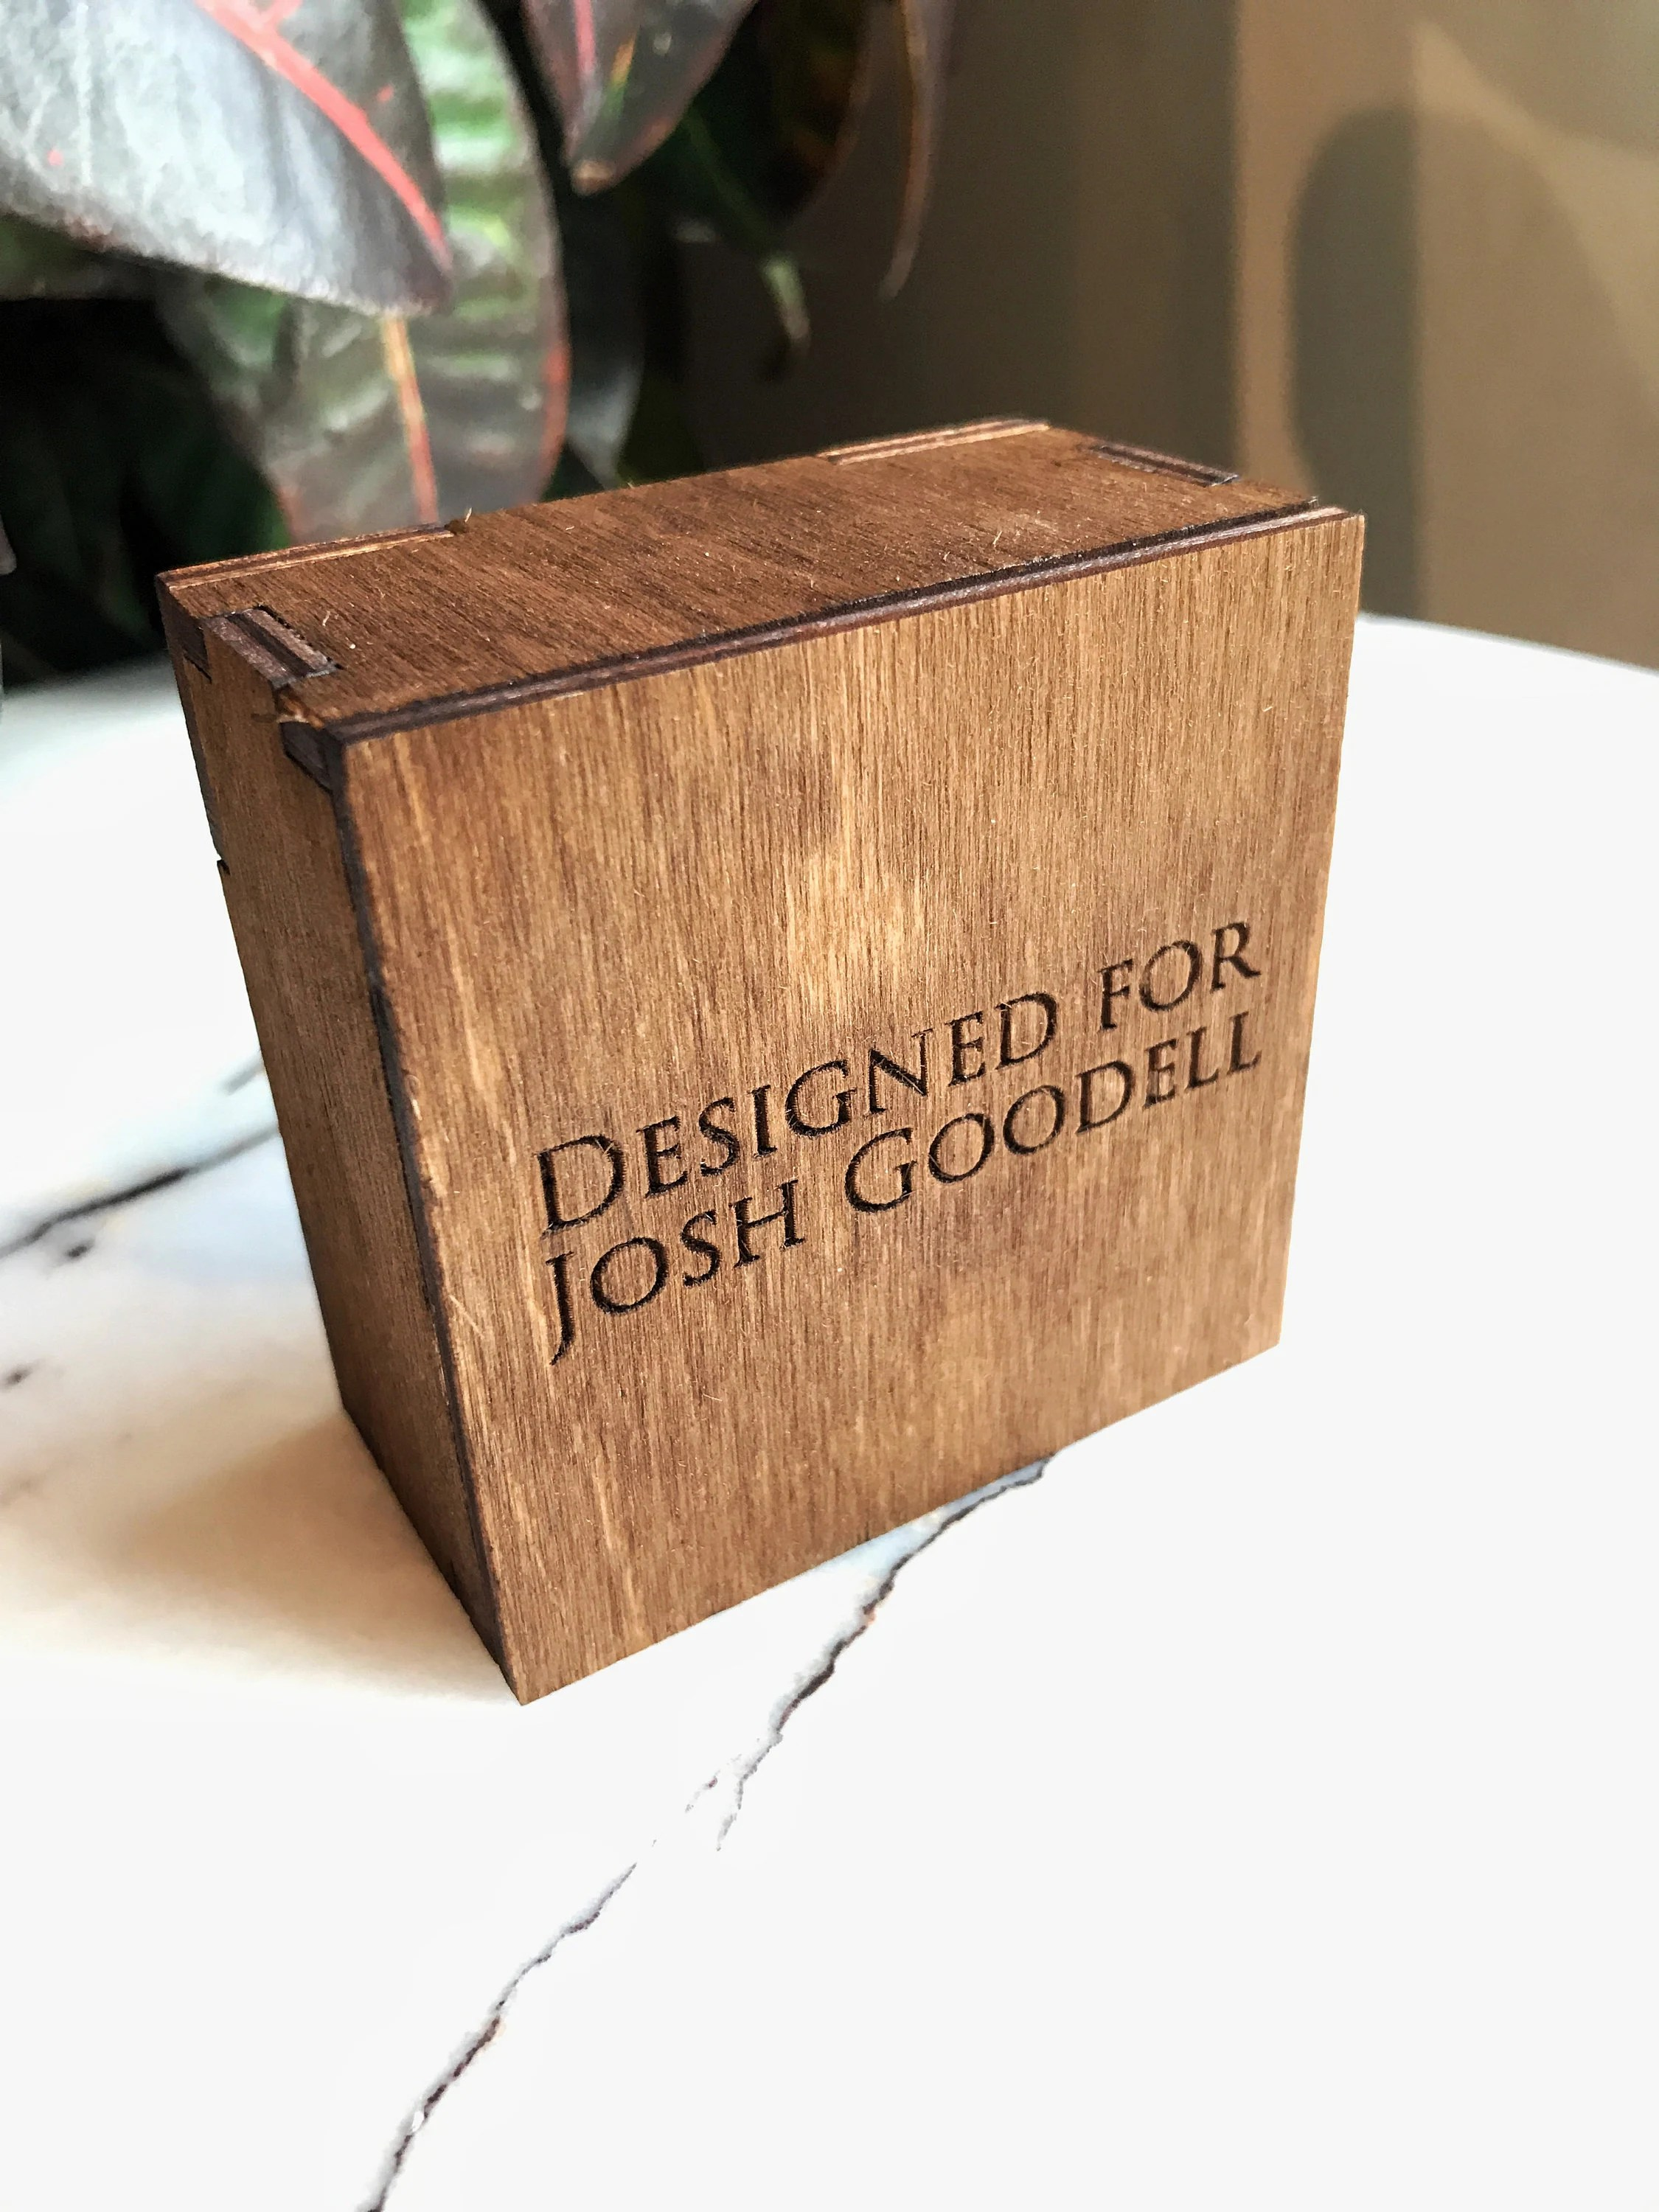 Wholesale Wooden Boxes : wholesale, wooden, boxes, Personalized, Wooden, Branded, Packaging, Engraved, Custom, Jewelry, Boxes, Wholesale, Order, Supply, Keepsake, Product, Making, Craft, Supplies, Tools